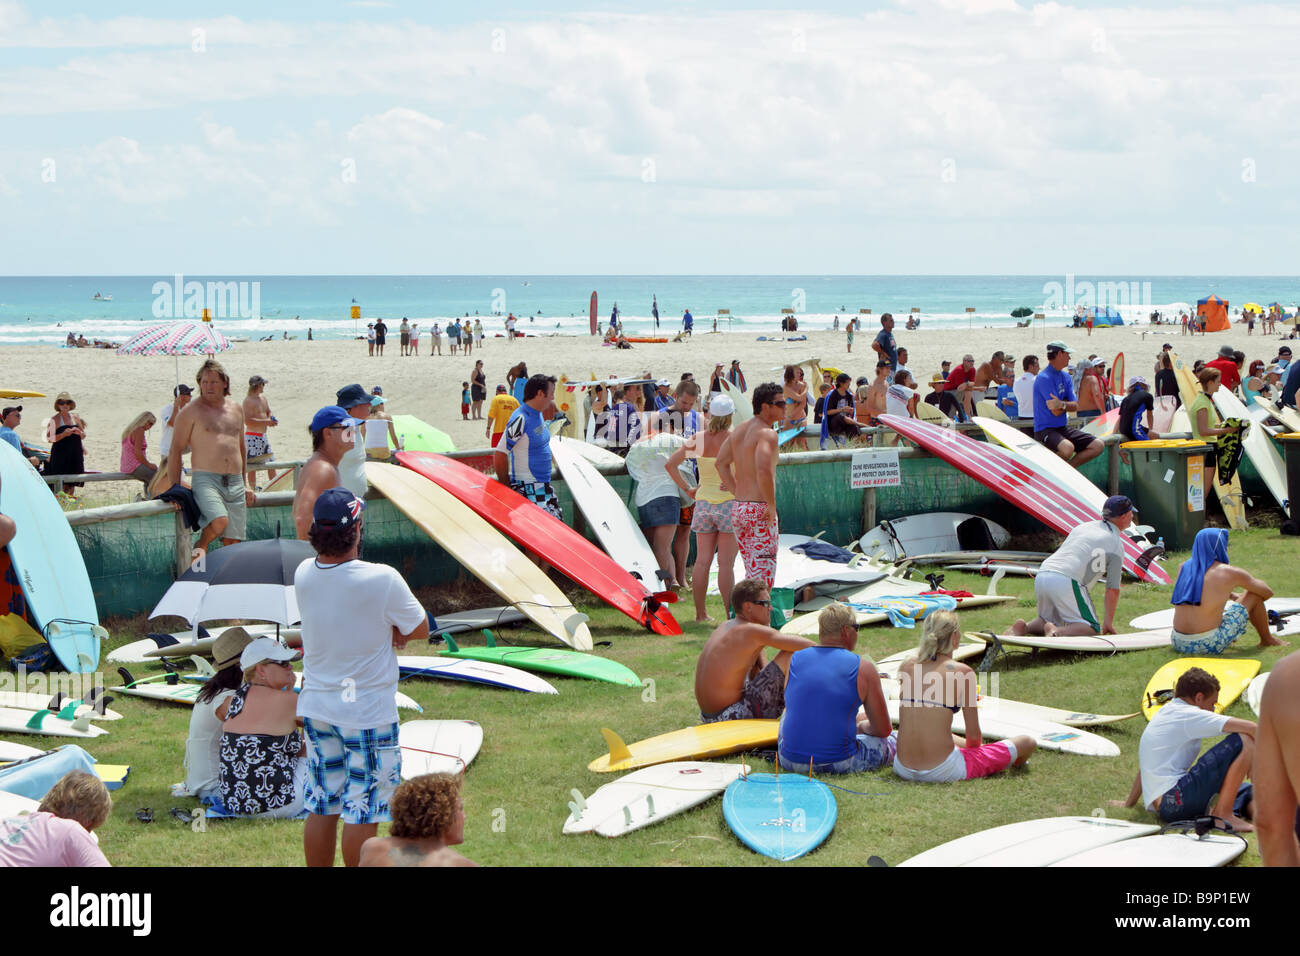 Protesters at a rally to protest beach pumping - Stock Image